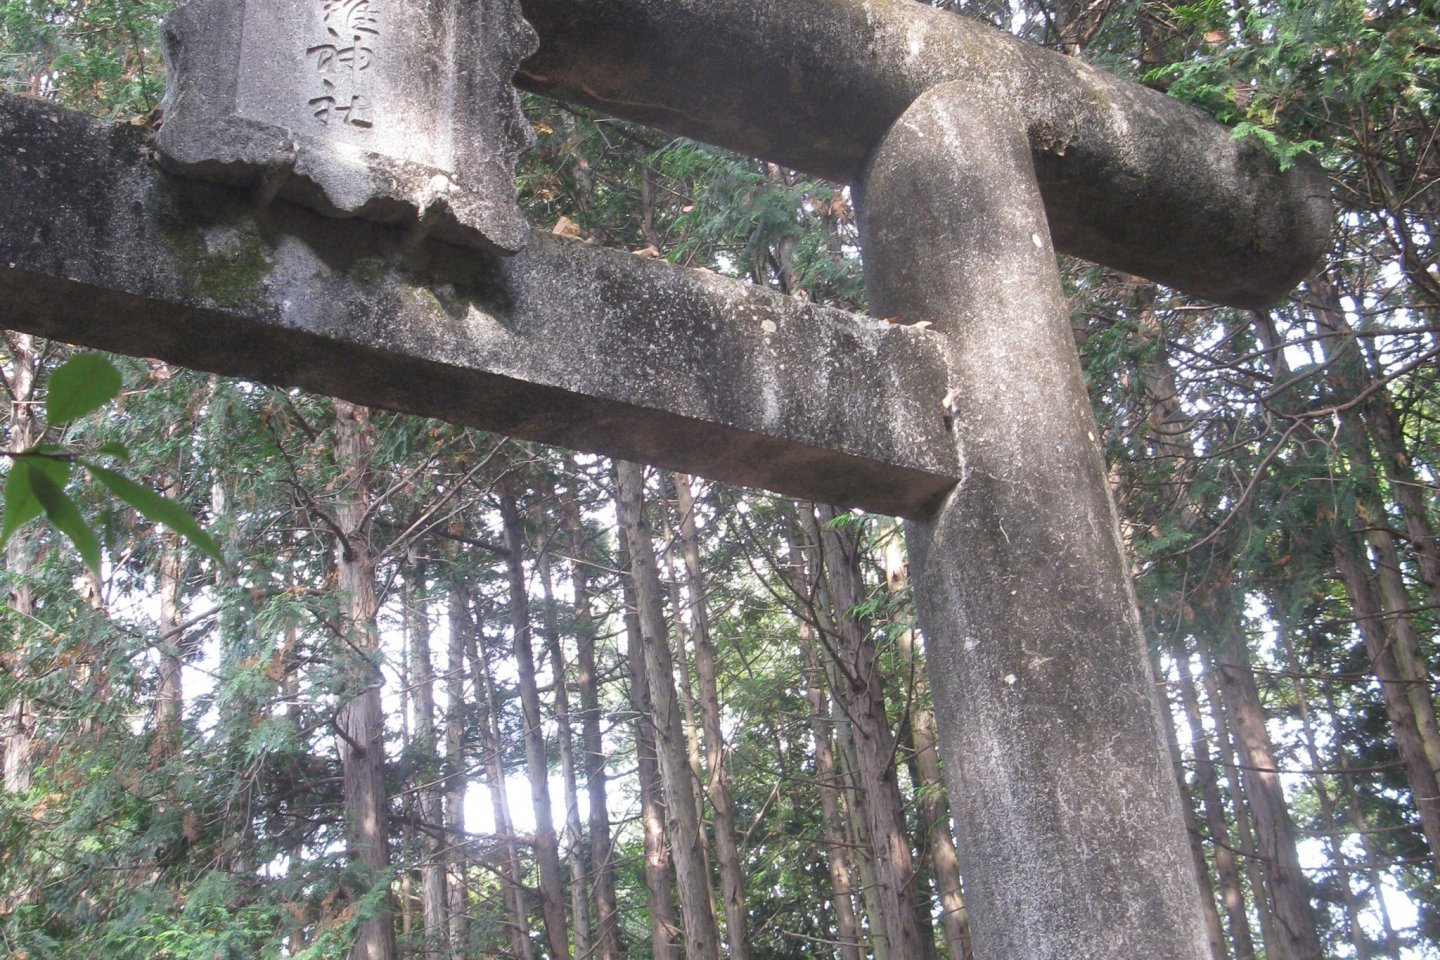 The first torii is a magnificent stone gate in the forest